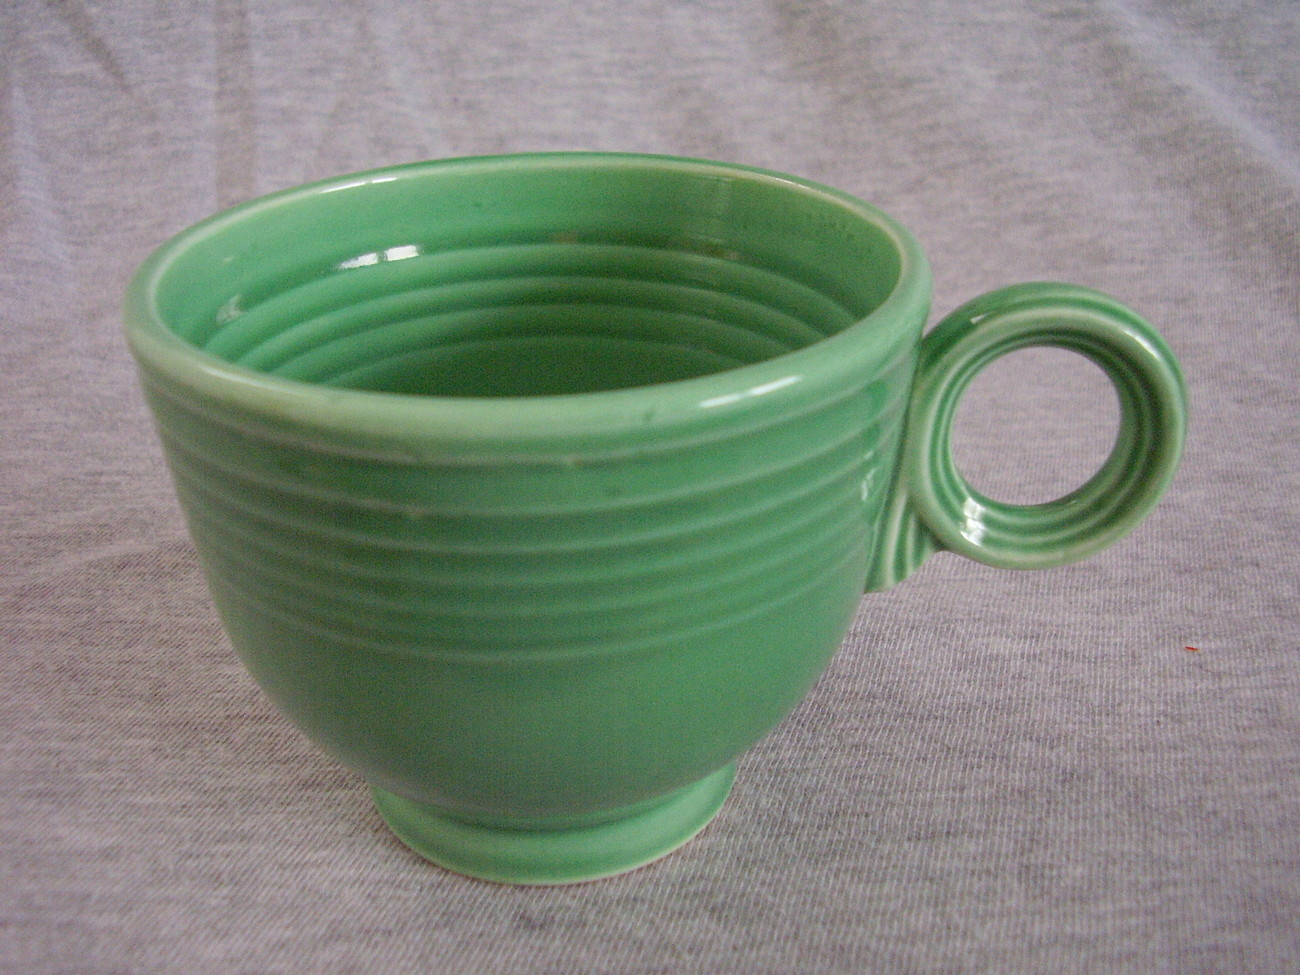 Vintage Fiestaware Original Green Ring Handle Teacup B